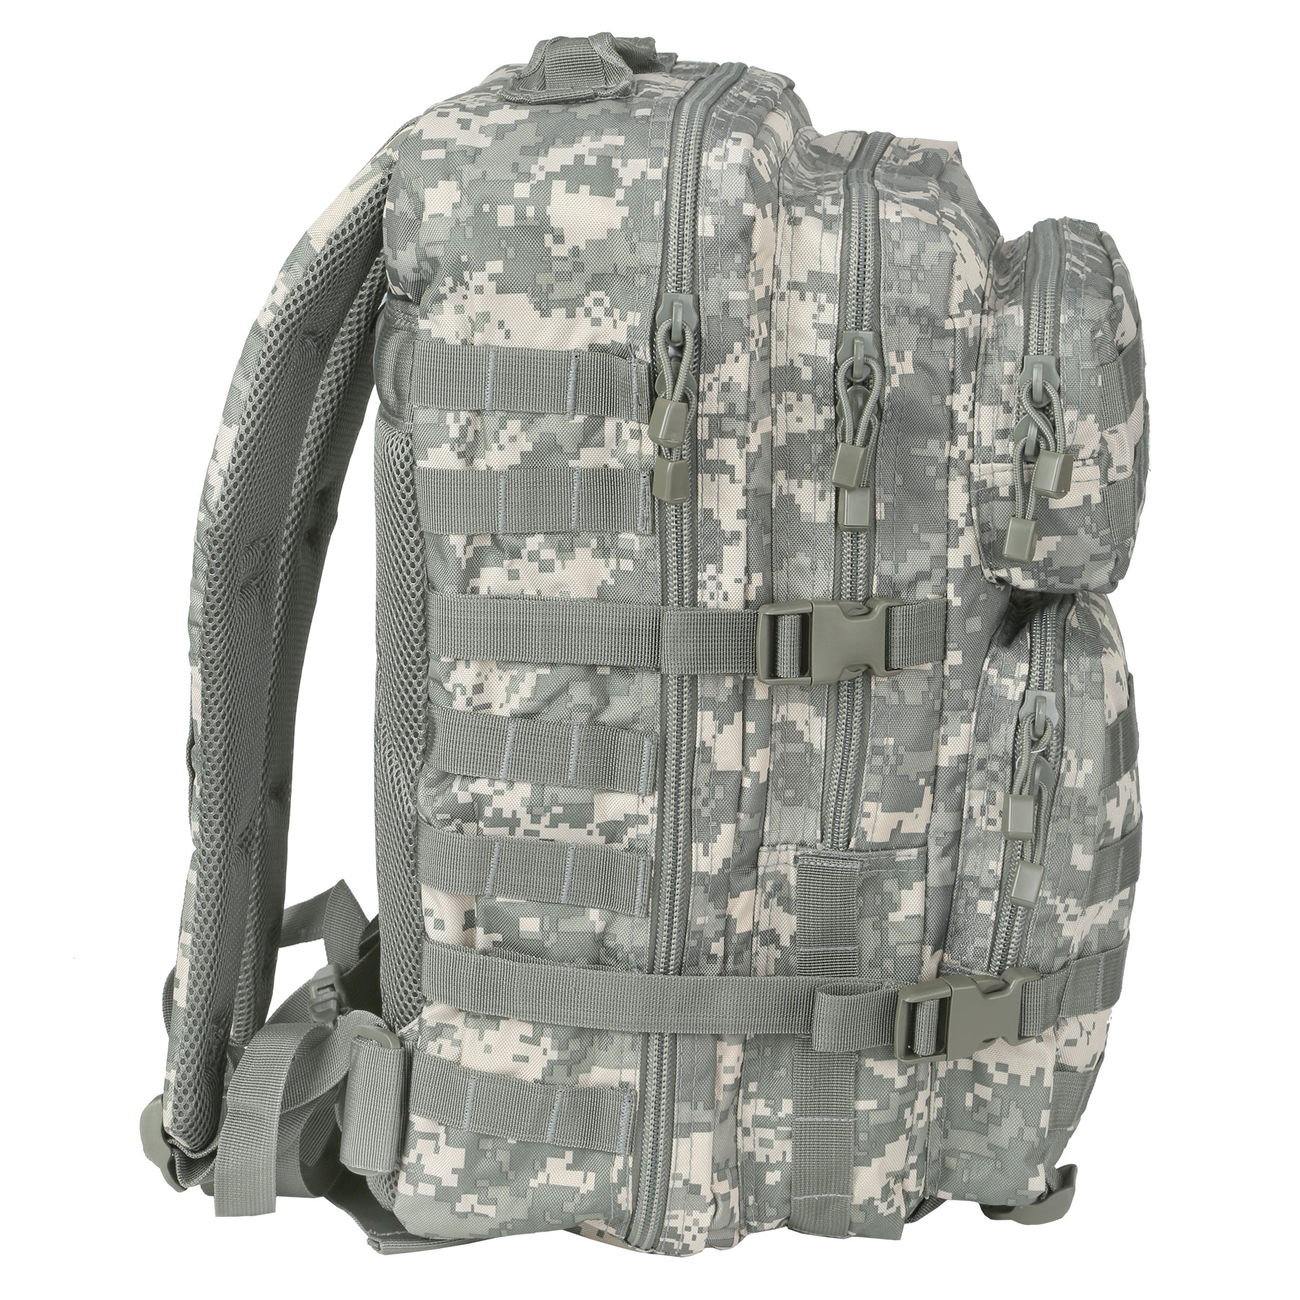 Mil-Tec Rucksack US Assault Pack II 40 Liter at-digital 1